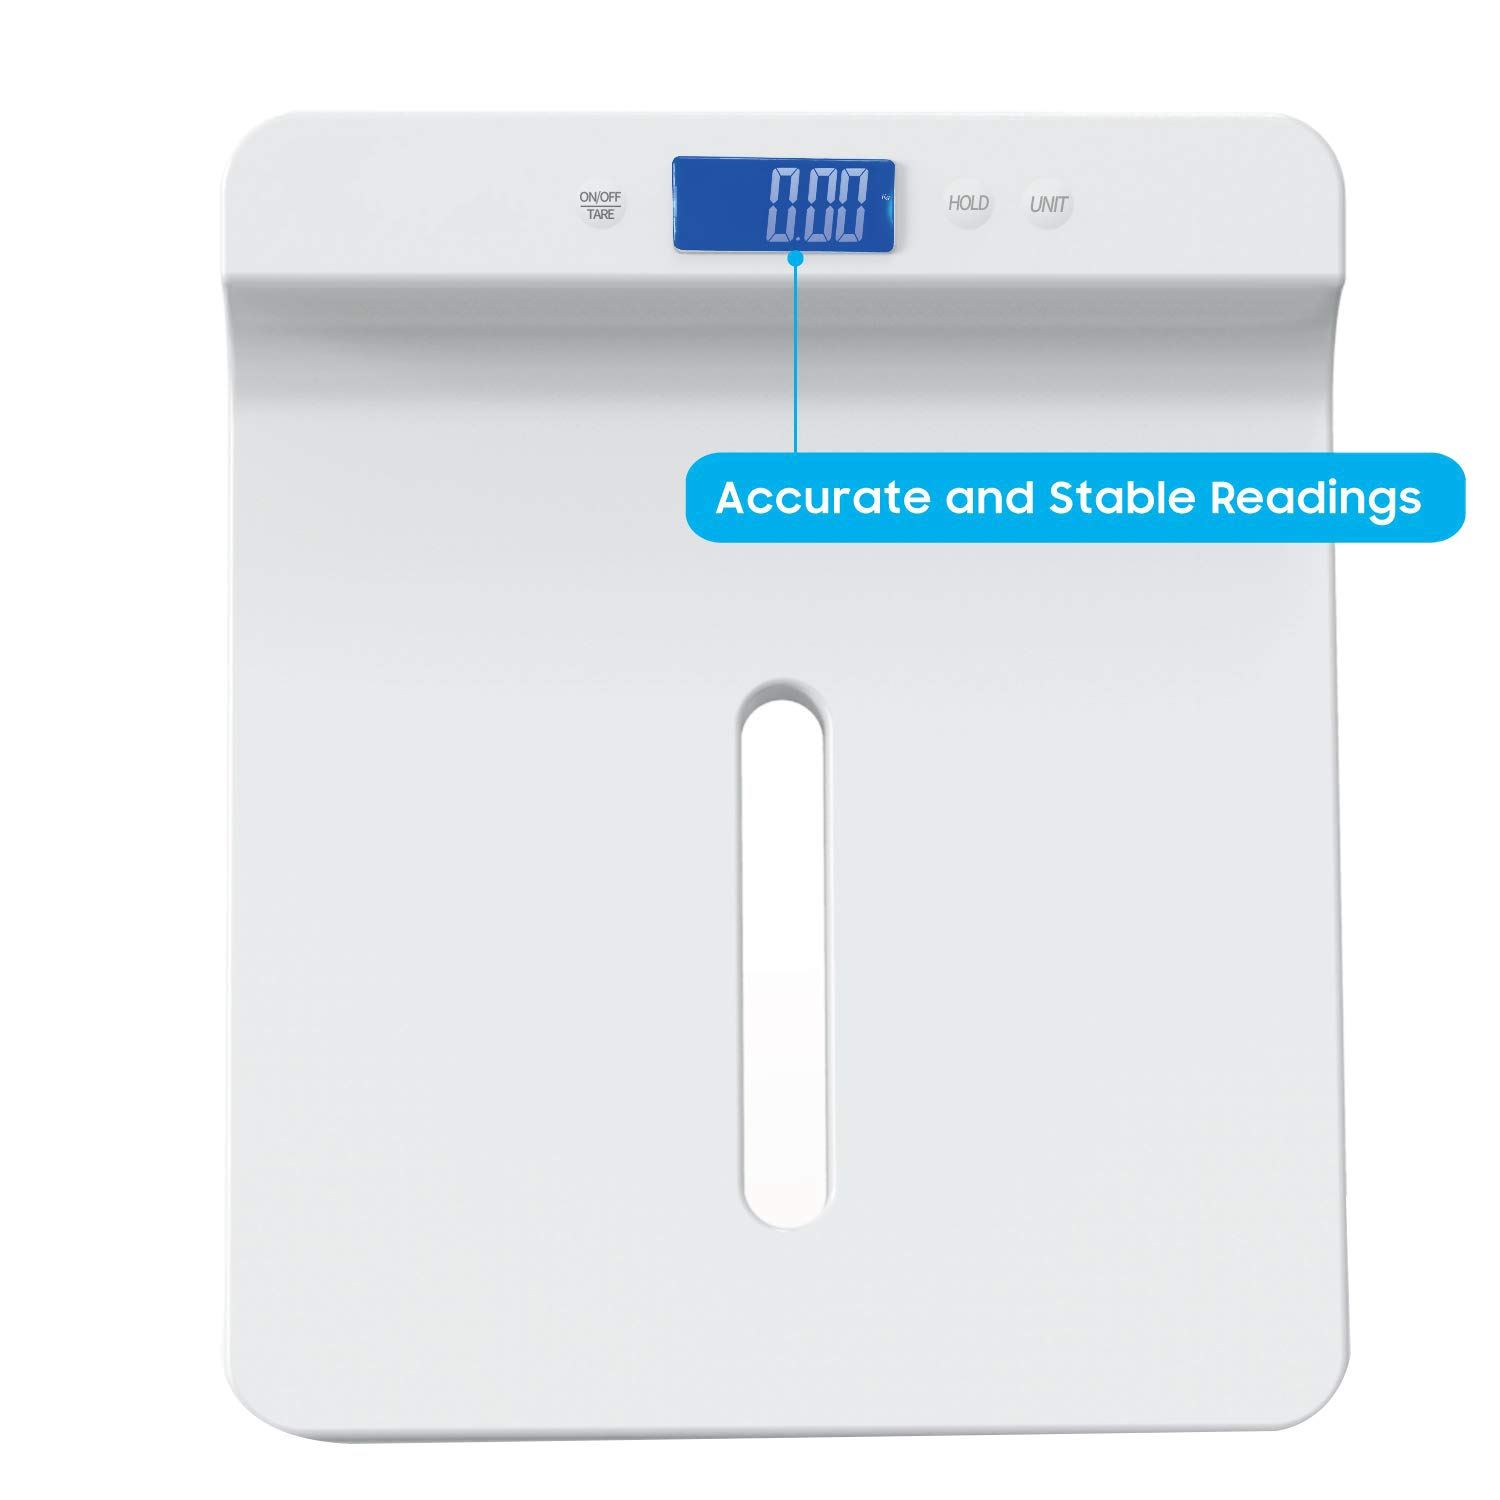 CUHAWUDBA Baby Scale,Digital Pet Scale,Toddler Scale,Infant Scale to Measure Babies//Pets Accurately and Holding Function,Blue Backlight,Height Tray